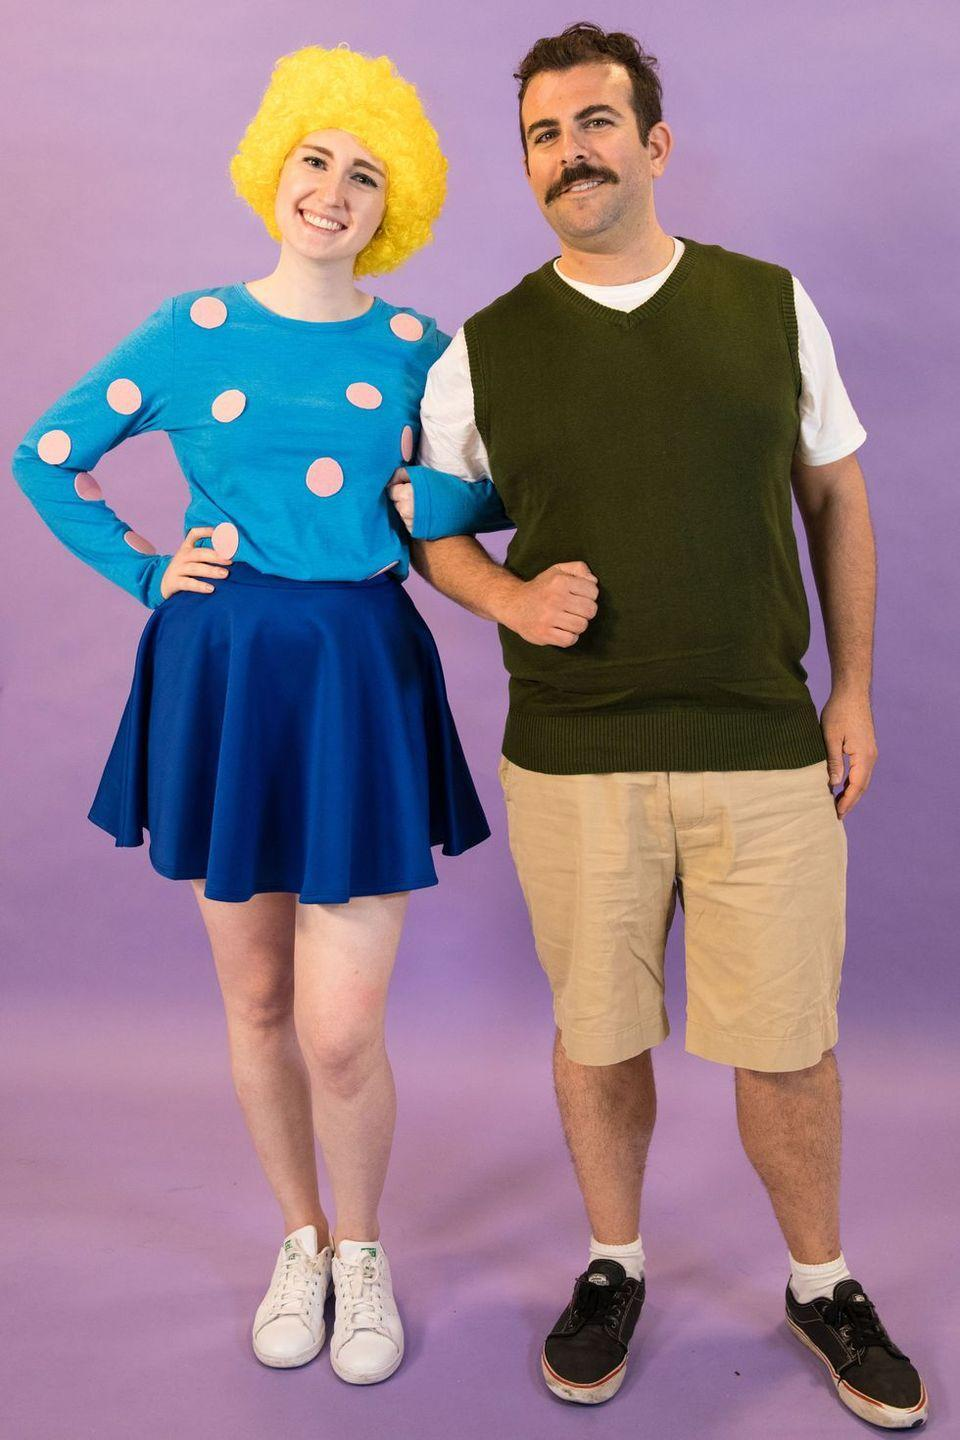 """<p>They're one of the most famous almost-but-not-quite couples, but that's exactly what makes this cartoon duo a favorite for kids and adults alike. You and your beau will just have to play pretend since you're the real deal — that's what makes it fun. </p><p><a class=""""link rapid-noclick-resp"""" href=""""https://www.amazon.com/MapofBeauty-30cm-Cosplay-Costume-Yellow/dp/B01K9FR4J0/ref=sr_1_11?tag=syn-yahoo-20&ascsubtag=%5Bartid%7C10055.g.2625%5Bsrc%7Cyahoo-us"""" rel=""""nofollow noopener"""" target=""""_blank"""" data-ylk=""""slk:SHOP YELLOW WIG"""">SHOP YELLOW WIG</a></p>"""